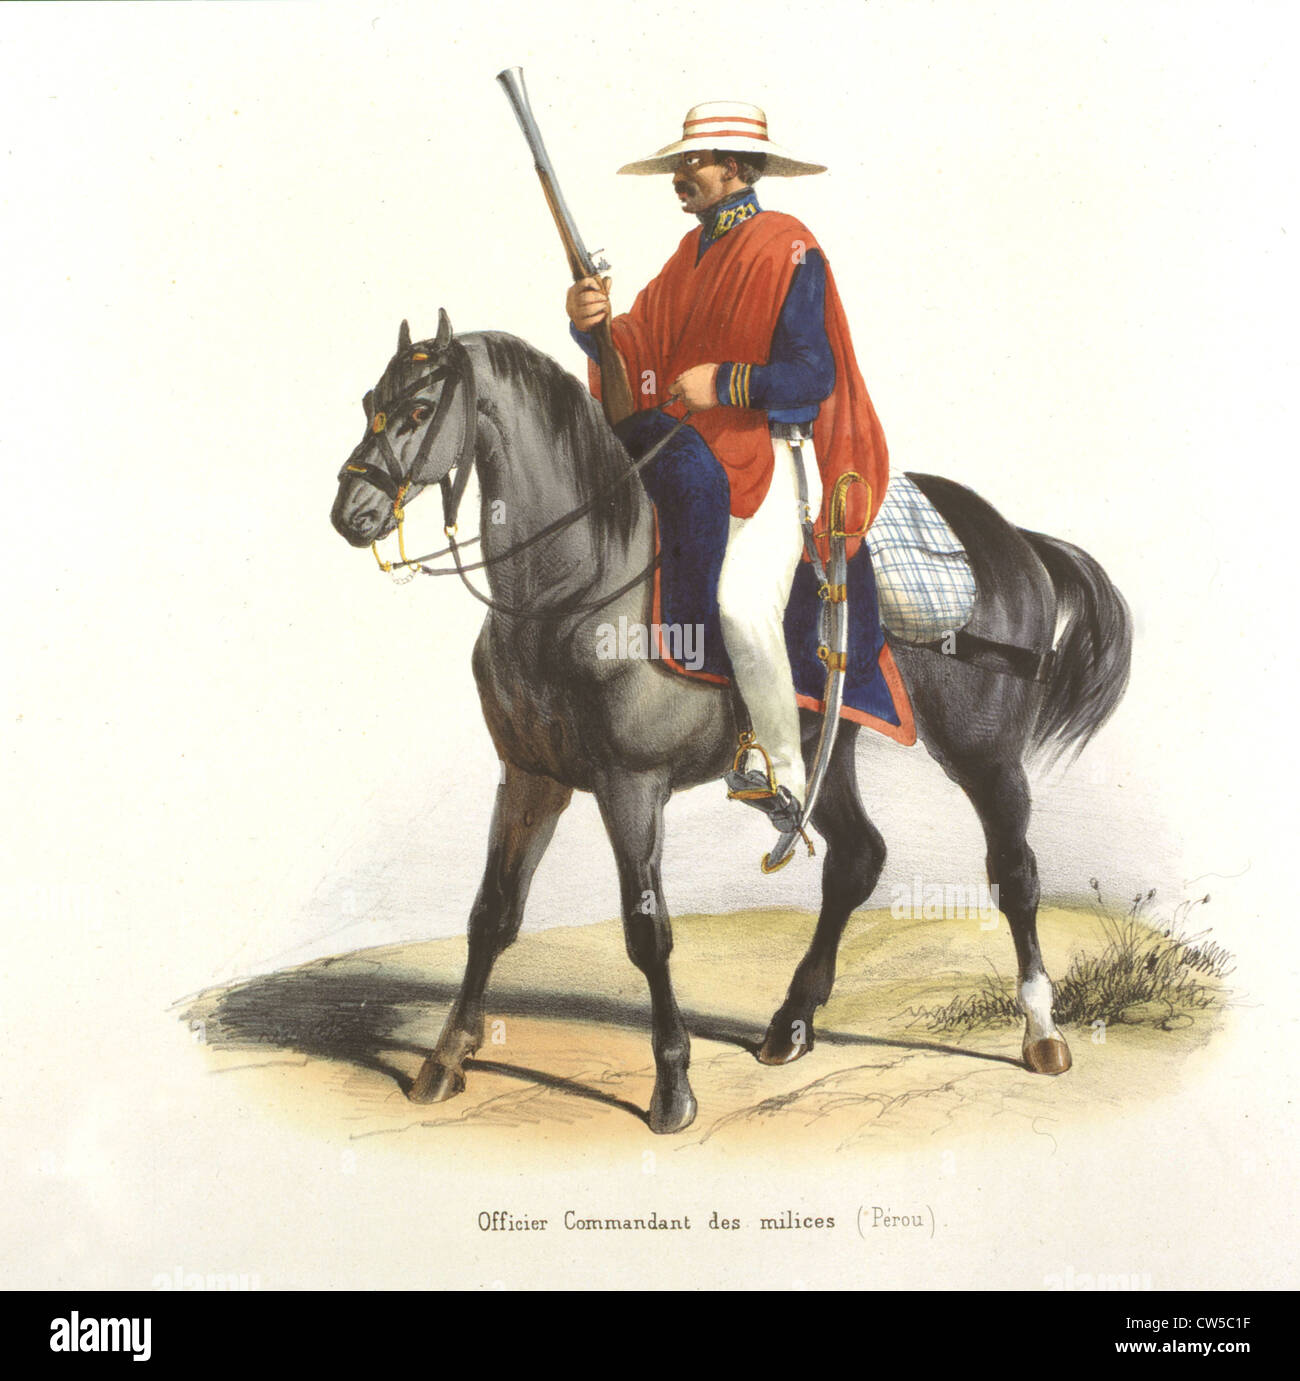 Blanchard, Commanding officer of the Militia - Stock Image